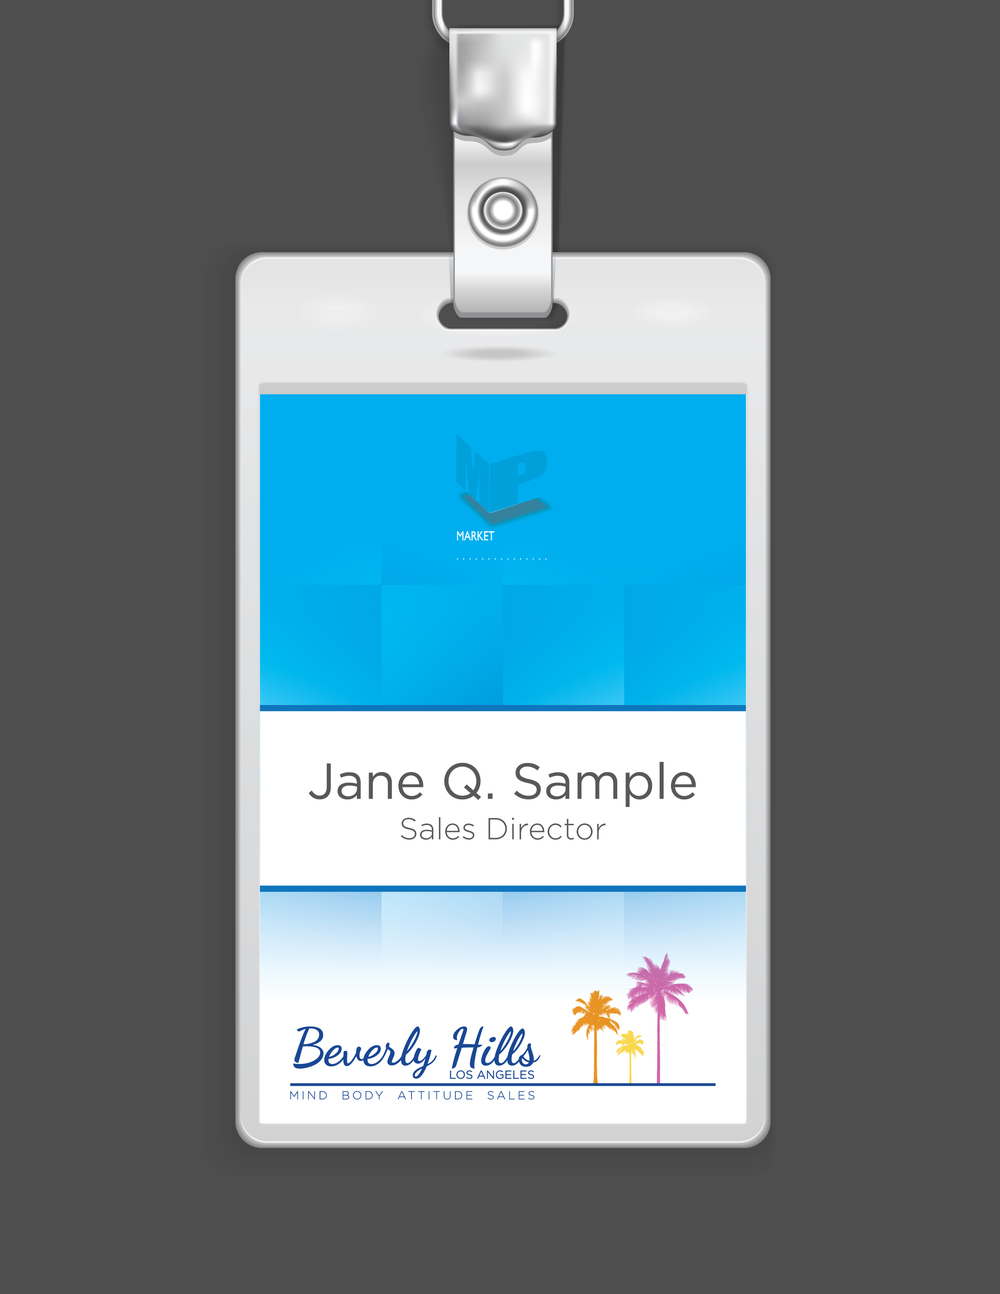 Name Badge Mock-Up-01.jpg